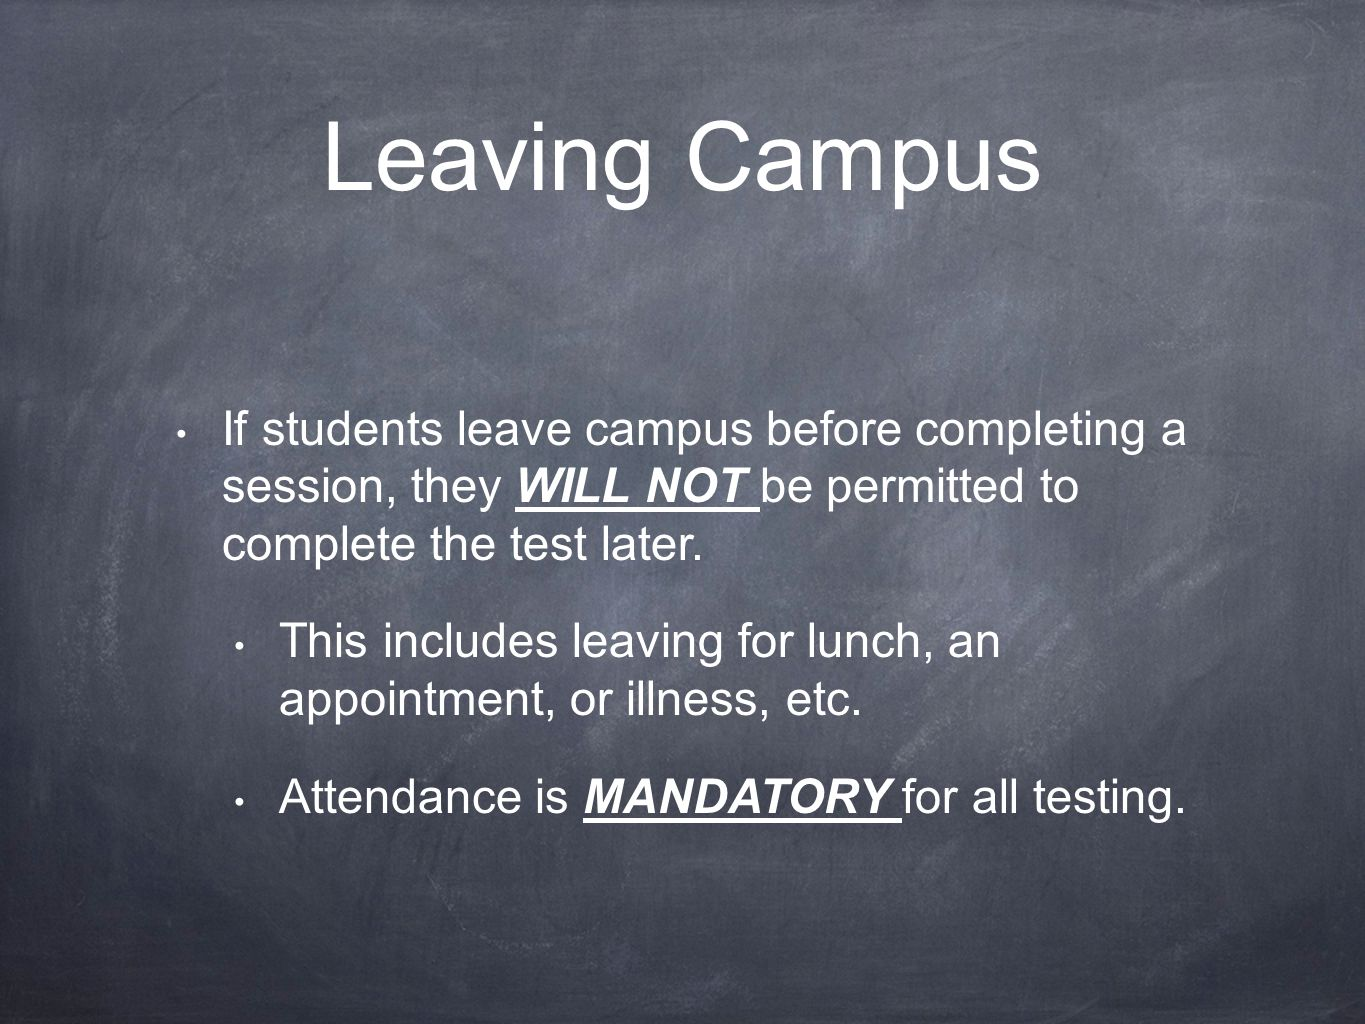 Leaving Campus If students leave campus before completing a session, they WILL NOT be permitted to complete the test later.